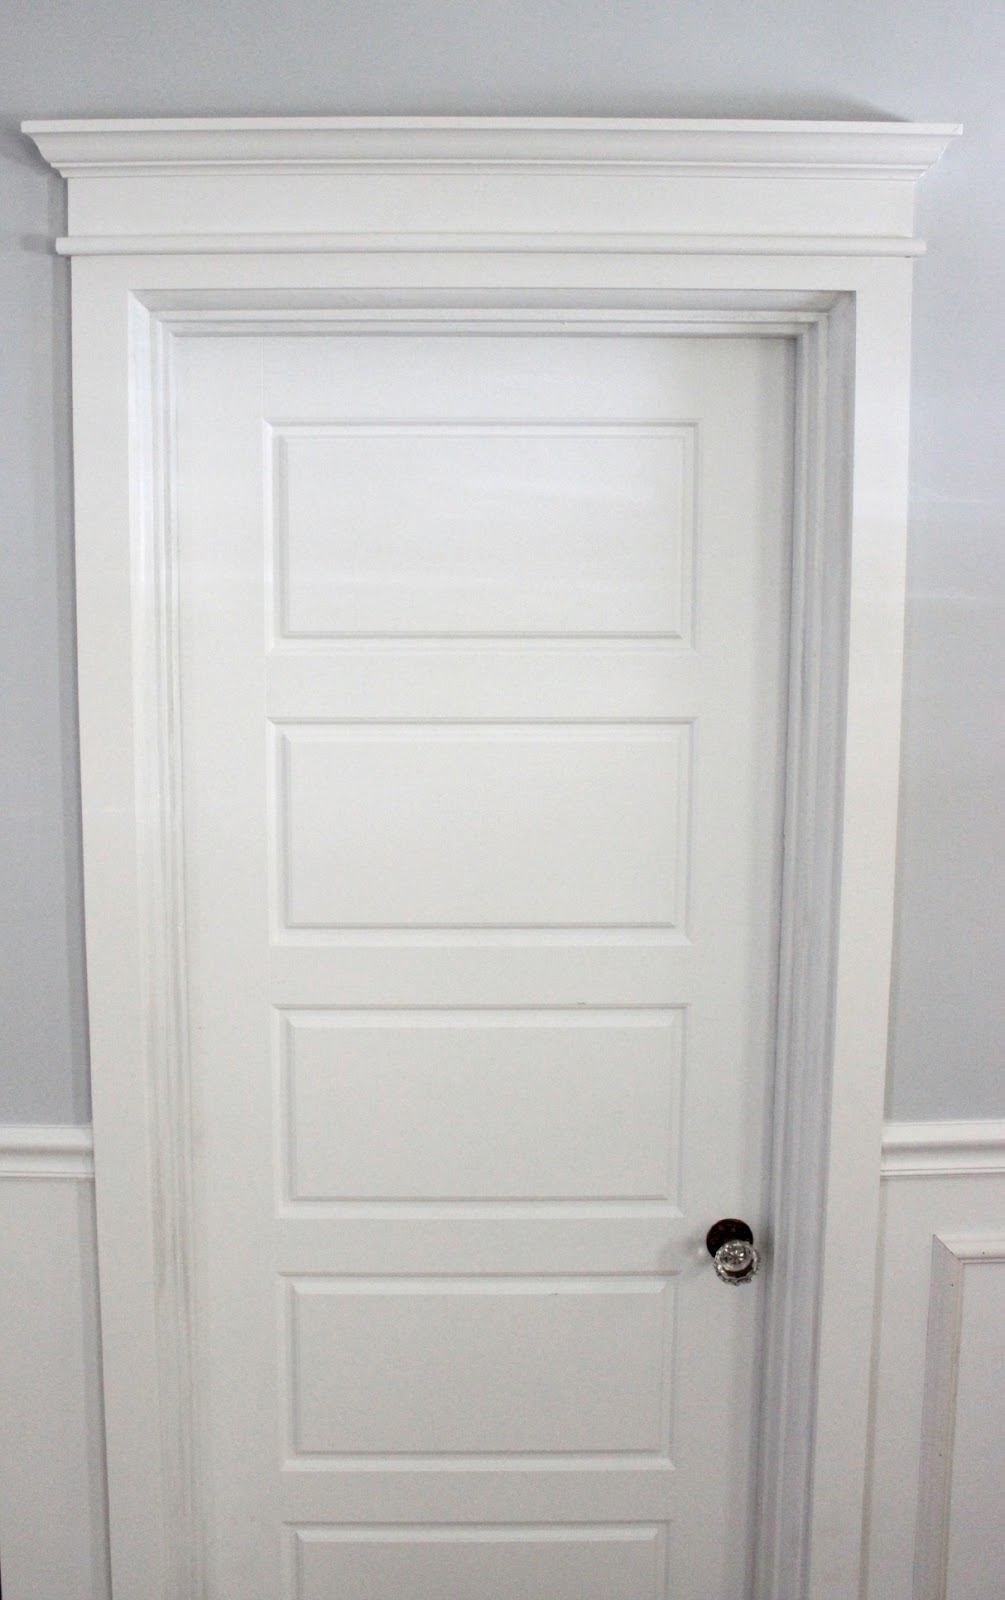 Door Trim & DIY Craftsman Trim